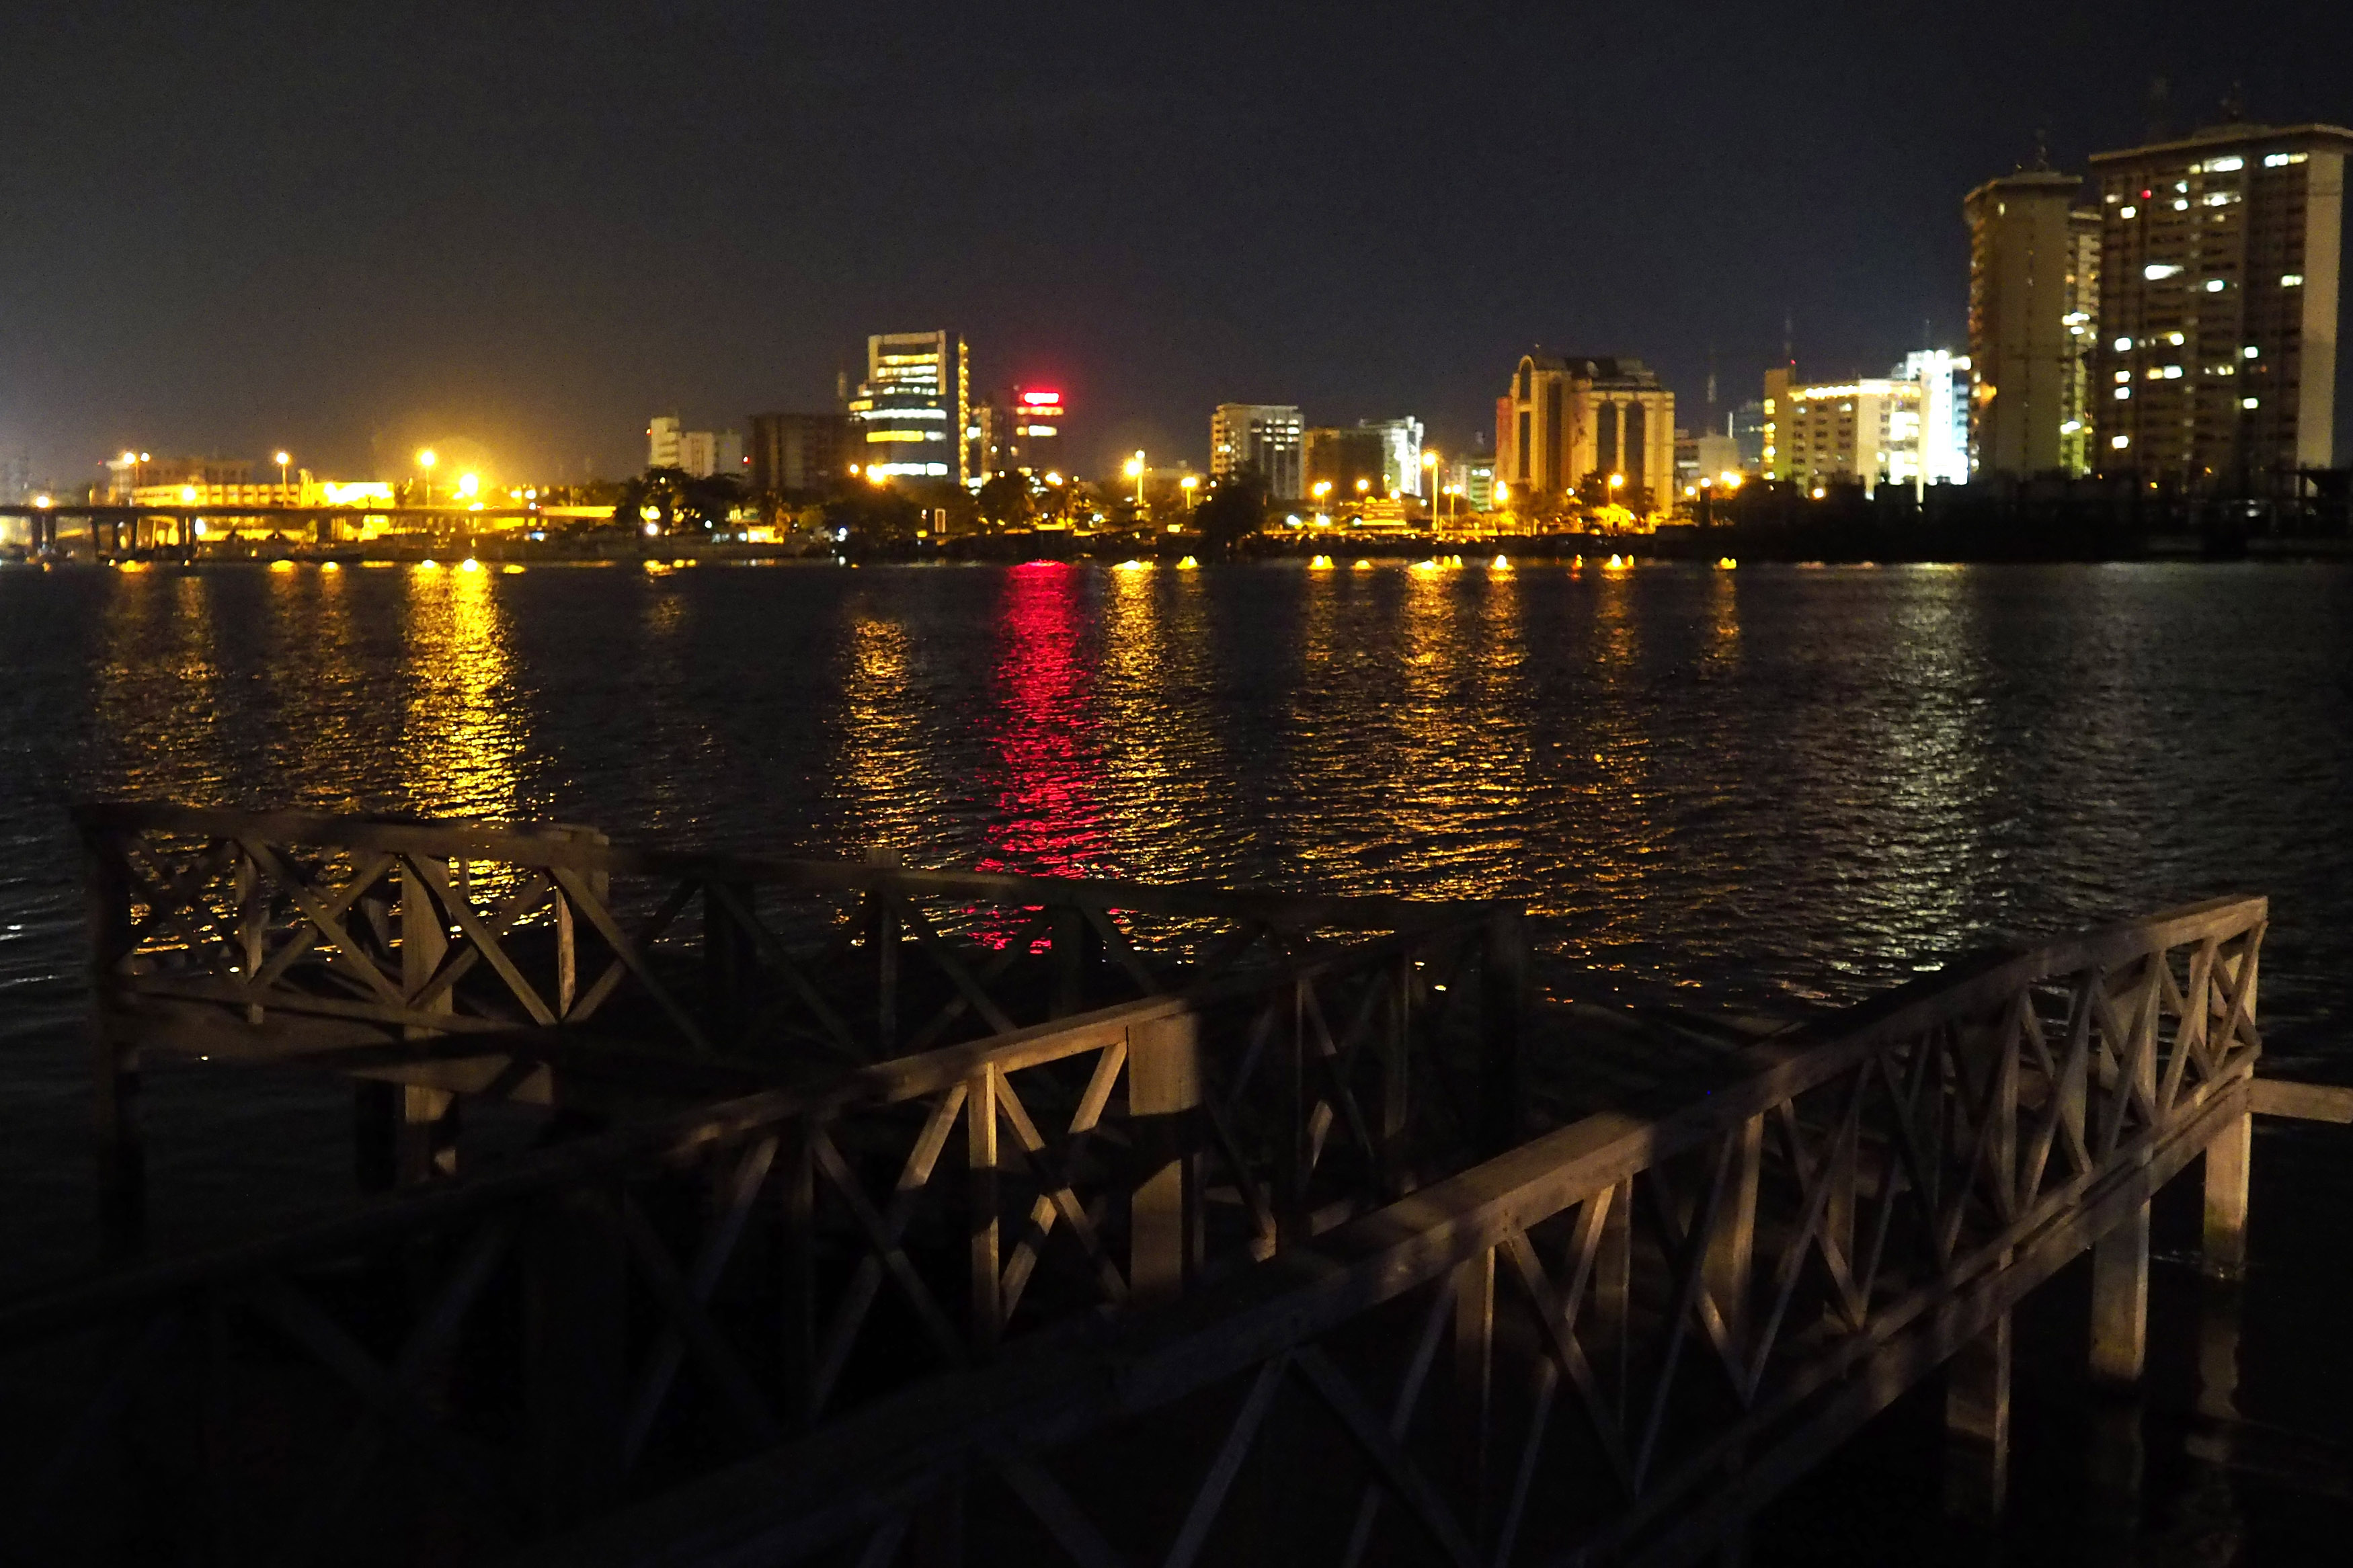 Nigeria has attracted much attention from American and European multinationals, according to a new survey. Here is the Victoria Island waterfront in Lagos from June 3, 2014